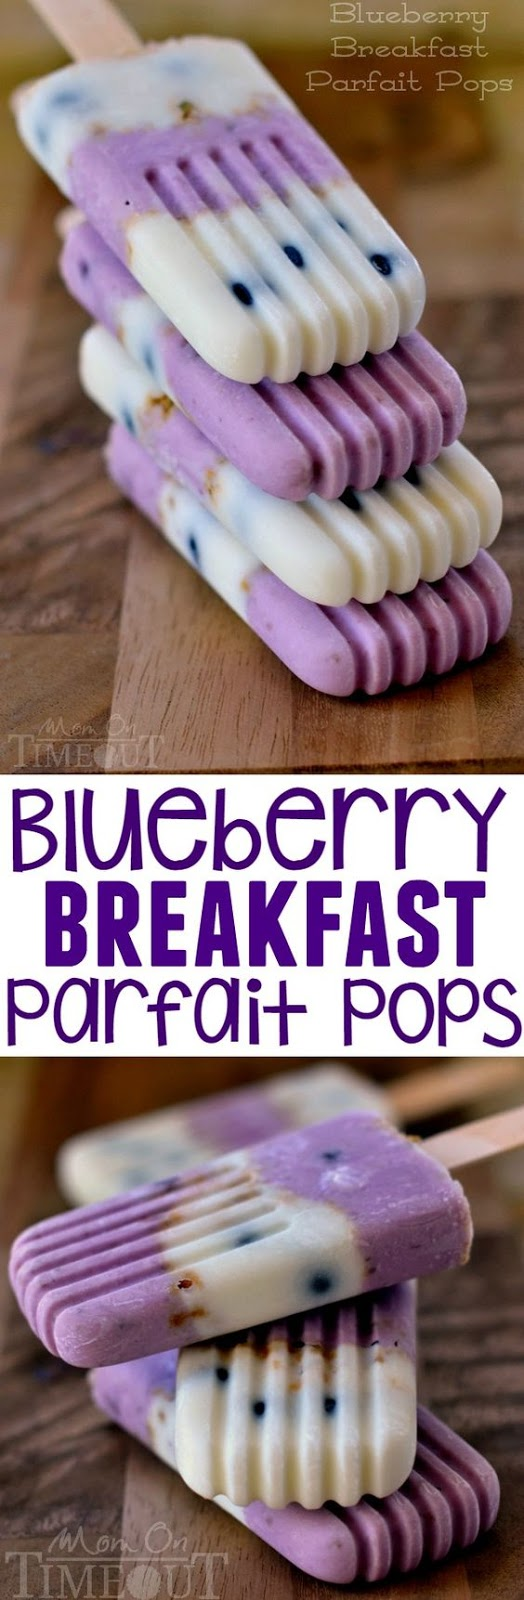 BLUEBERRY BREAKFAST PARFAIT POPS